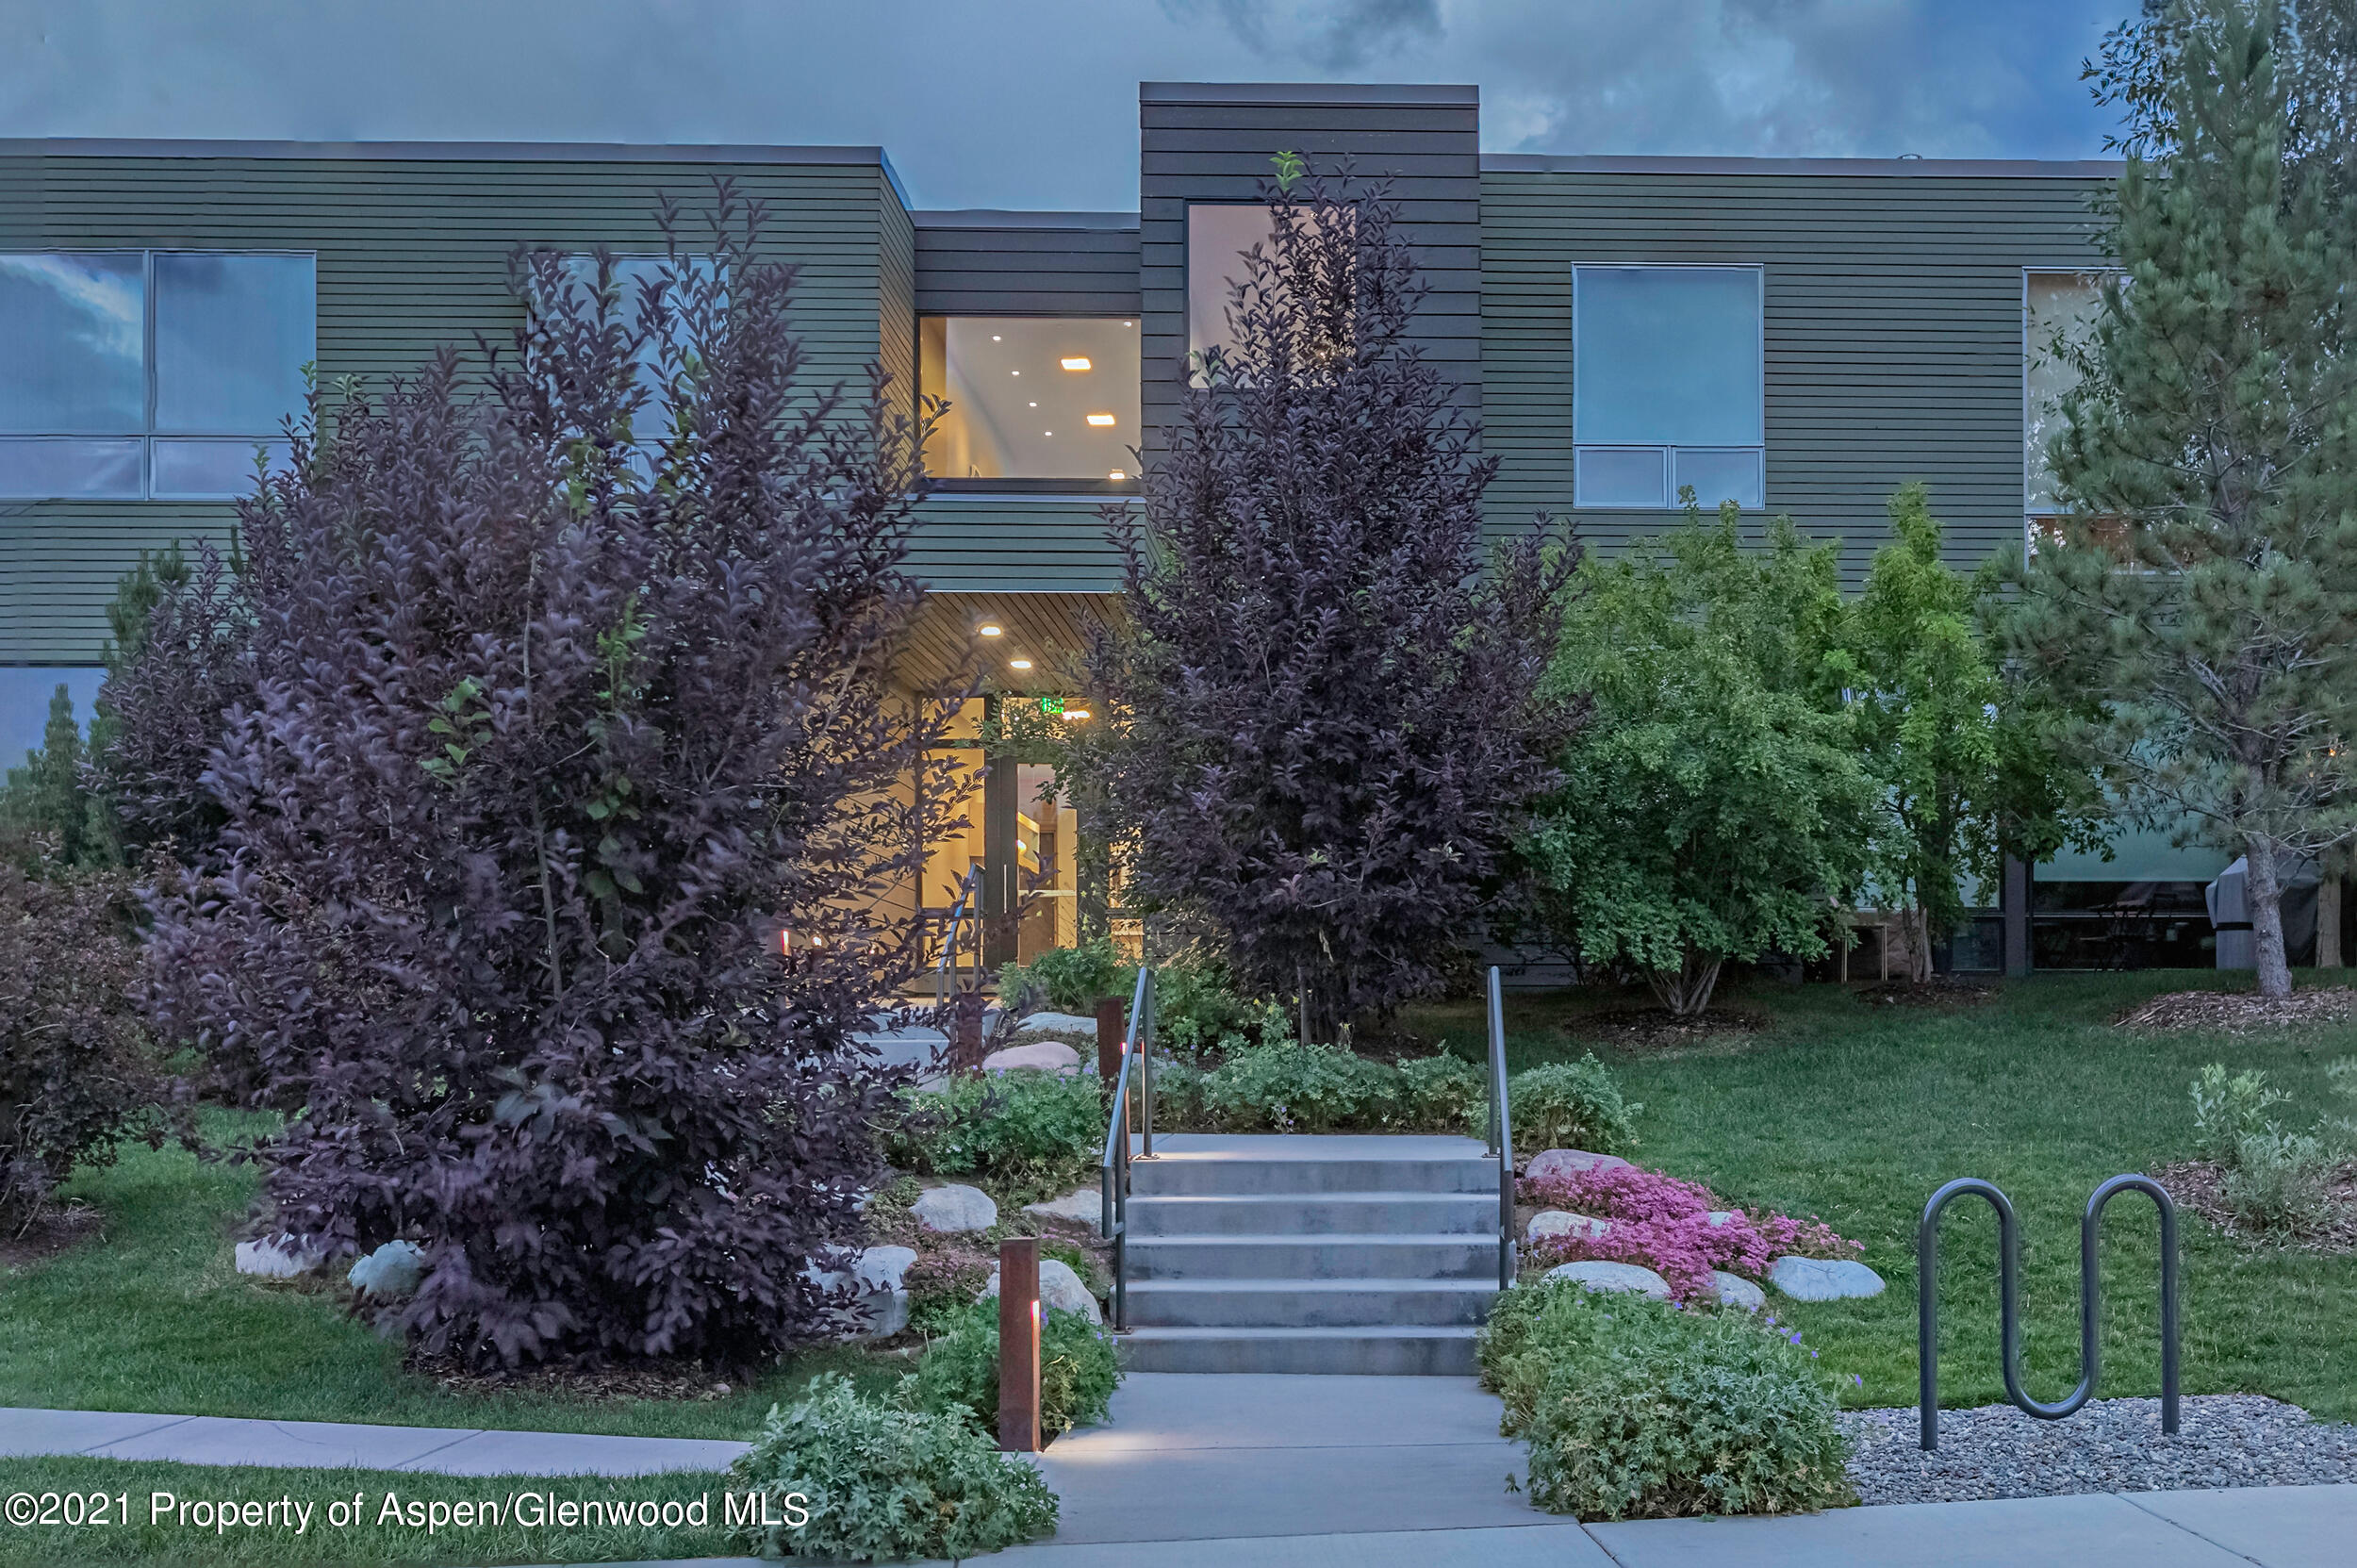 What everyone is searching for!  One floor living in the vibrant Willits/Park Modern community with floor to ceiling windows, 10 foot ceilings and a walk out patio that faces the seasonal stream and trees.  Lots of wall space for your art collection, 3 bedrooms and 3 baths, new flooring, new kitchen appliances, new showers in all of the baths,  gas fireplace with gorgeous marble surround, washer dryer,  two underground parking spaces plus storage and bike storage.  Lovely open areas for walking.  Filled with light, this lovely condo is ready for full time living and easy to lock up and leave.